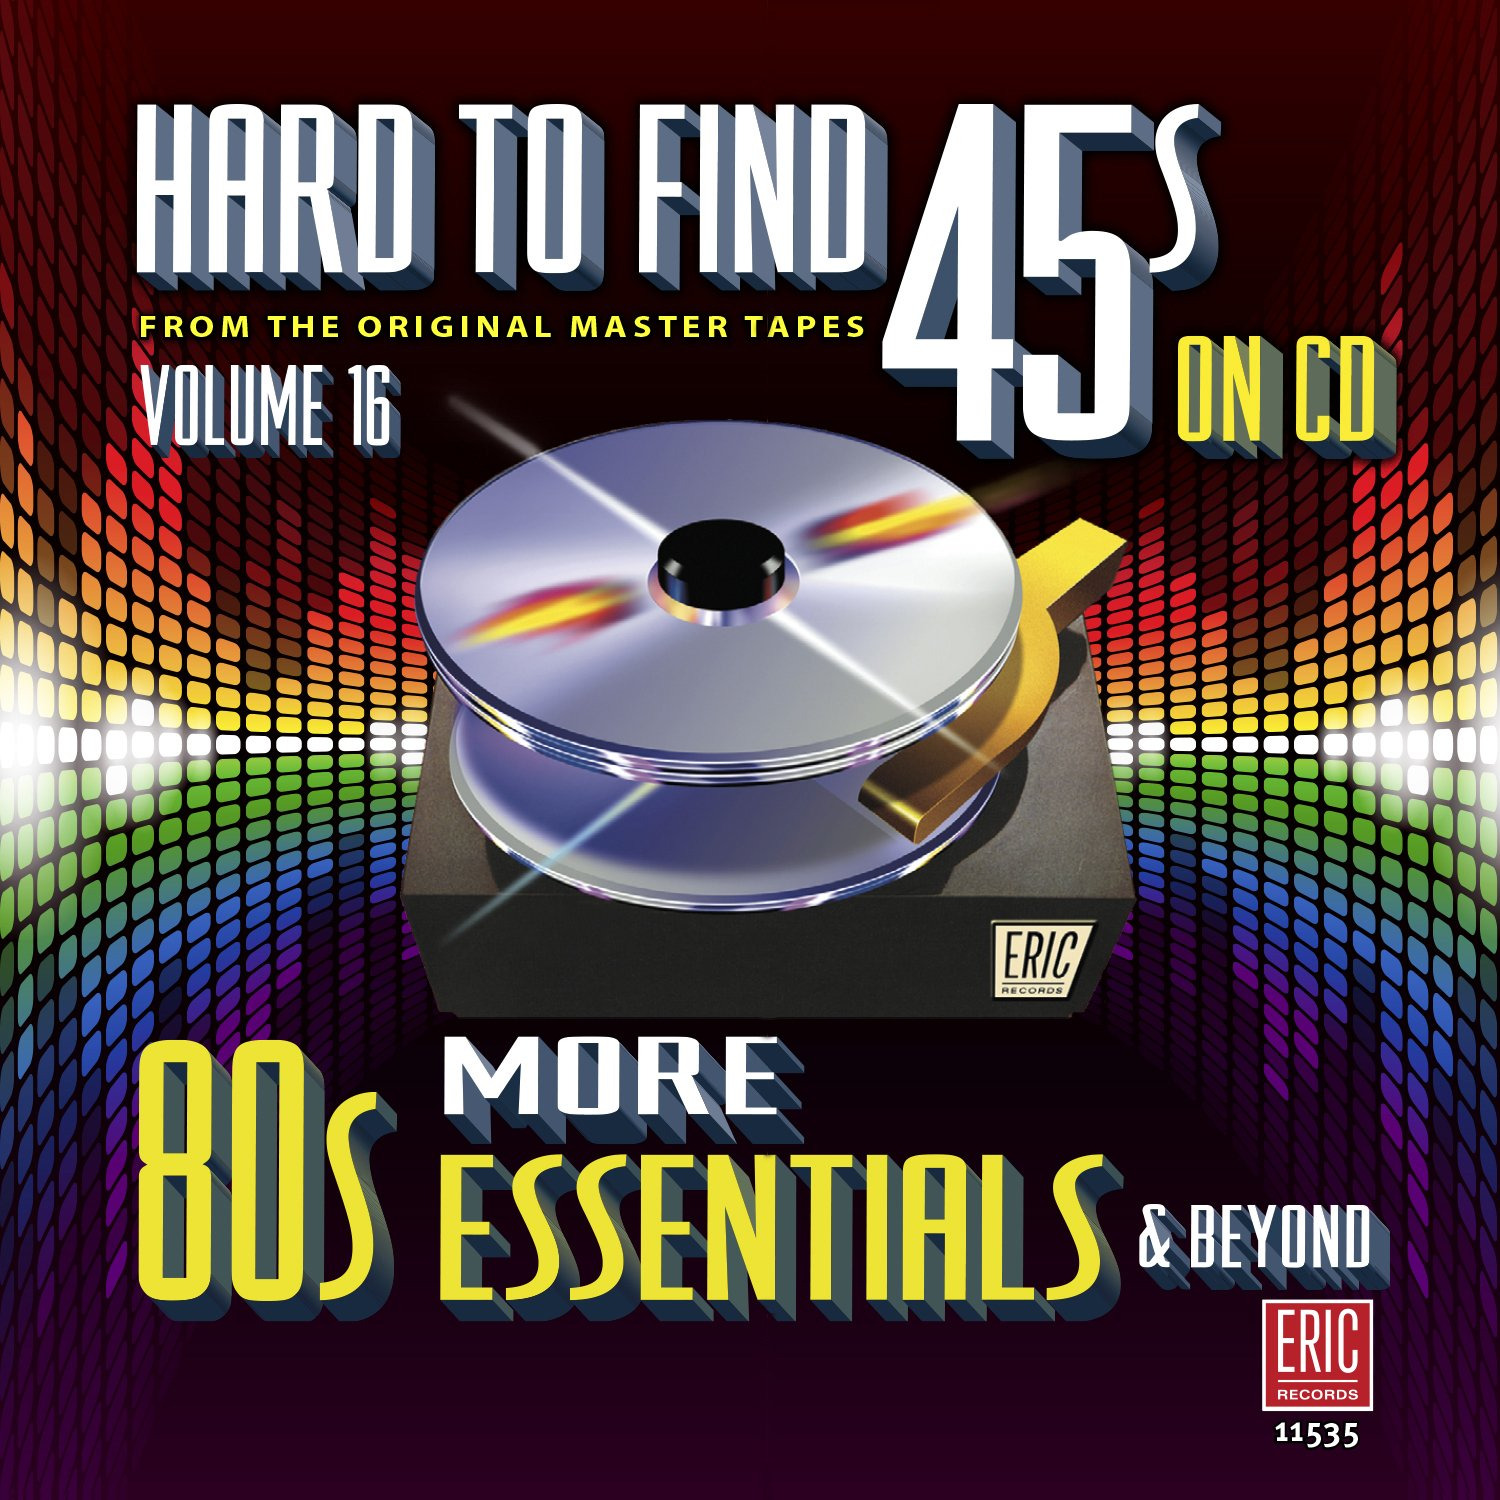 CD : Hard To Find 45s On Cd 16 - More 80s / Various (CD)